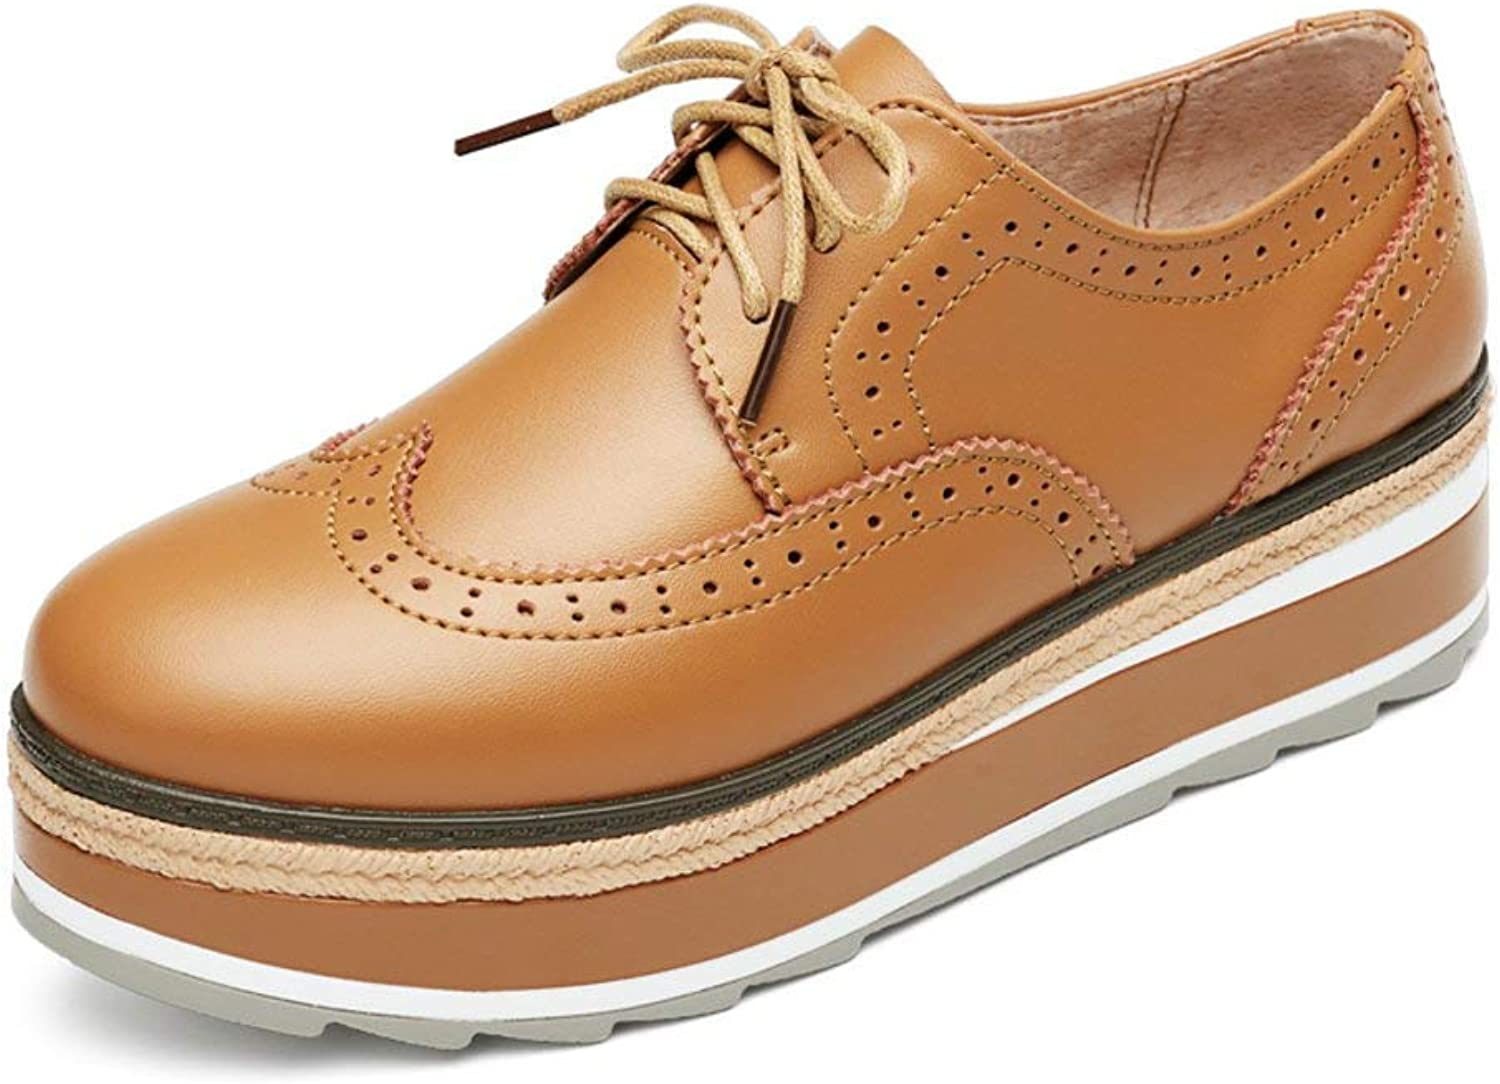 ZCW Casual Versatile shoes,Wind shoes of England,Leather Casual shoes, the Student shoes